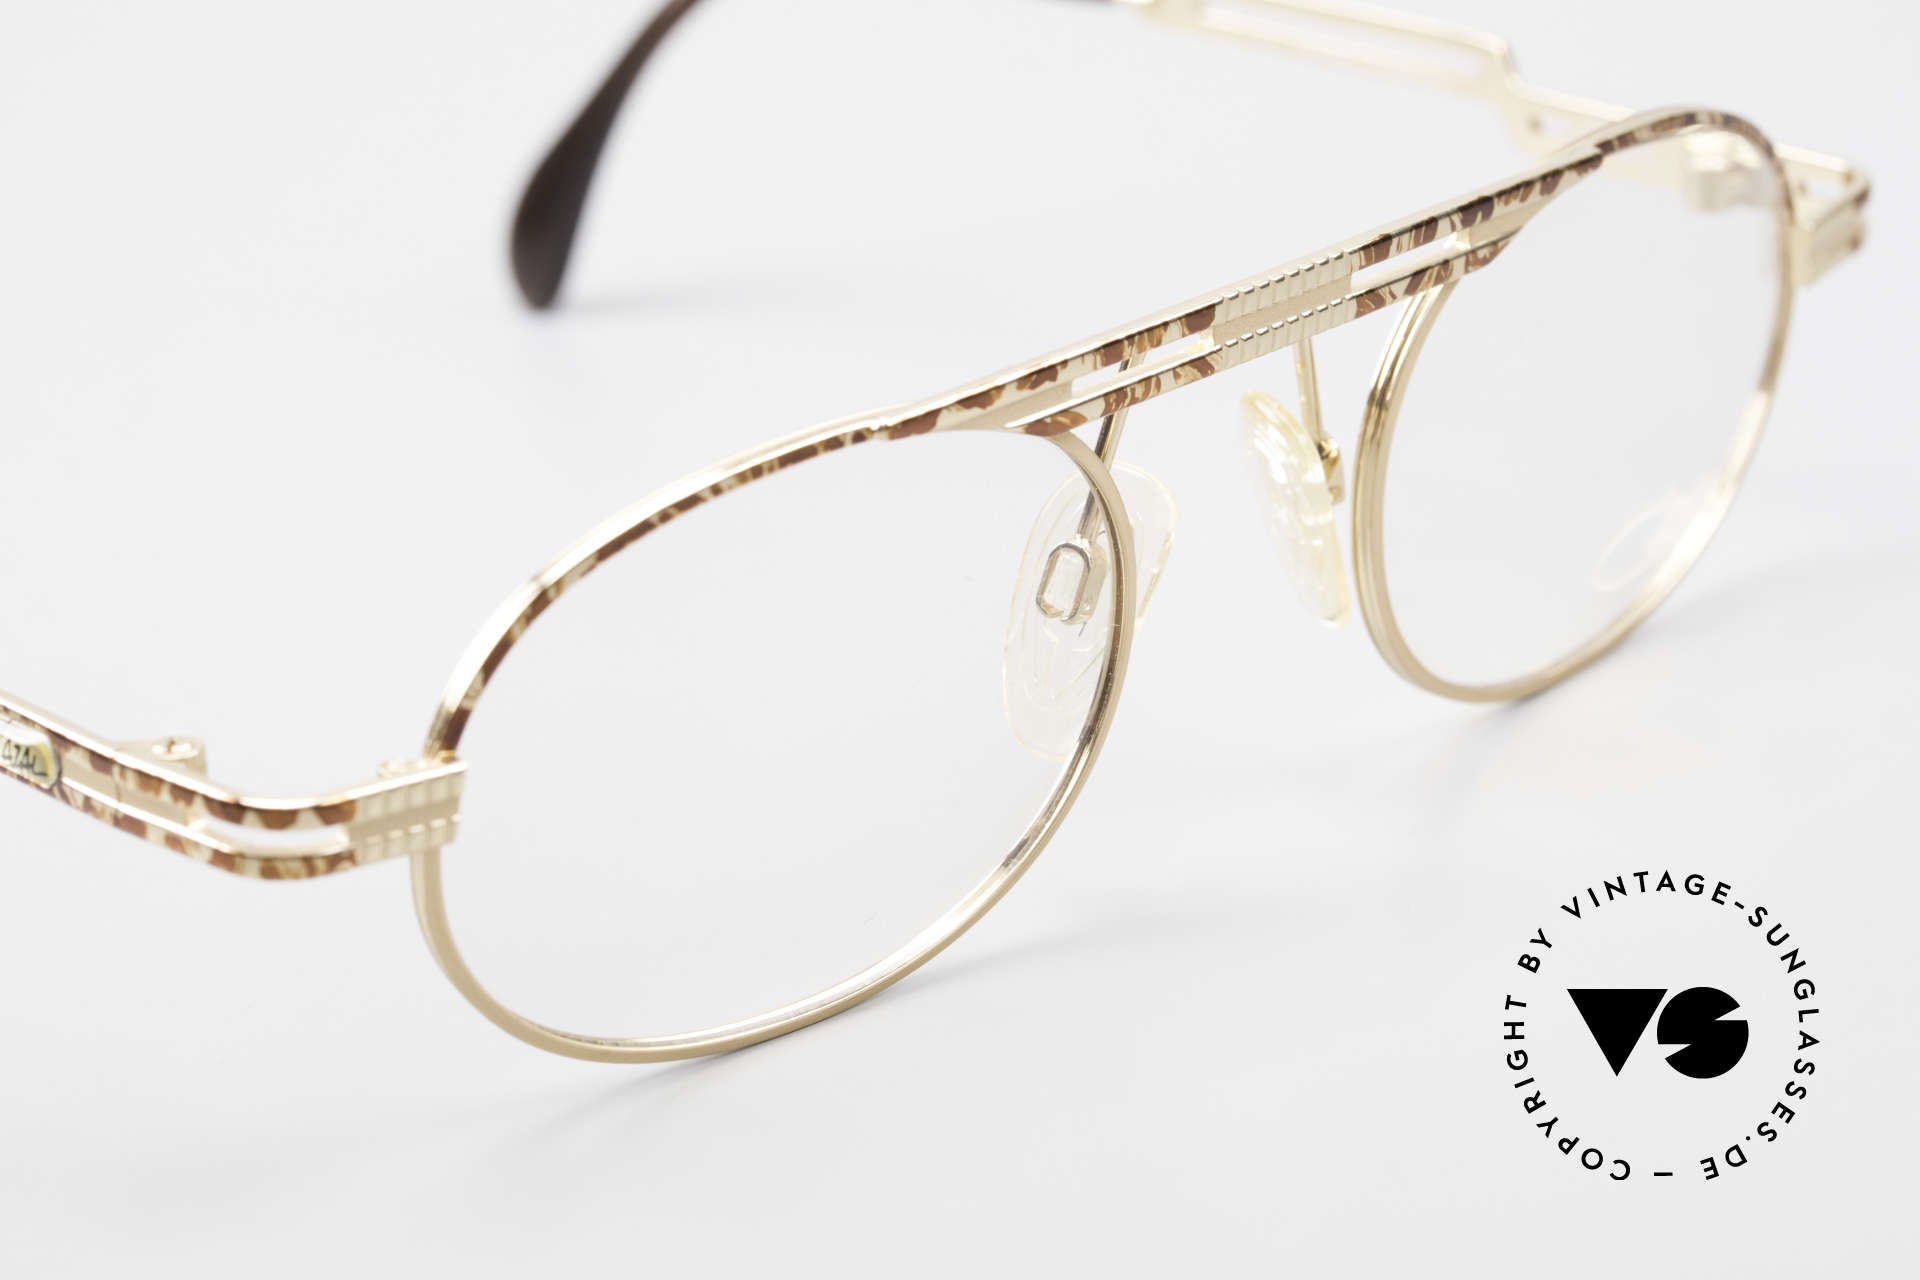 Cazal 762 Oval Vintage Eyeglasses 90's, NO retro; but a 1990's 'made in Germany' original, Made for Men and Women